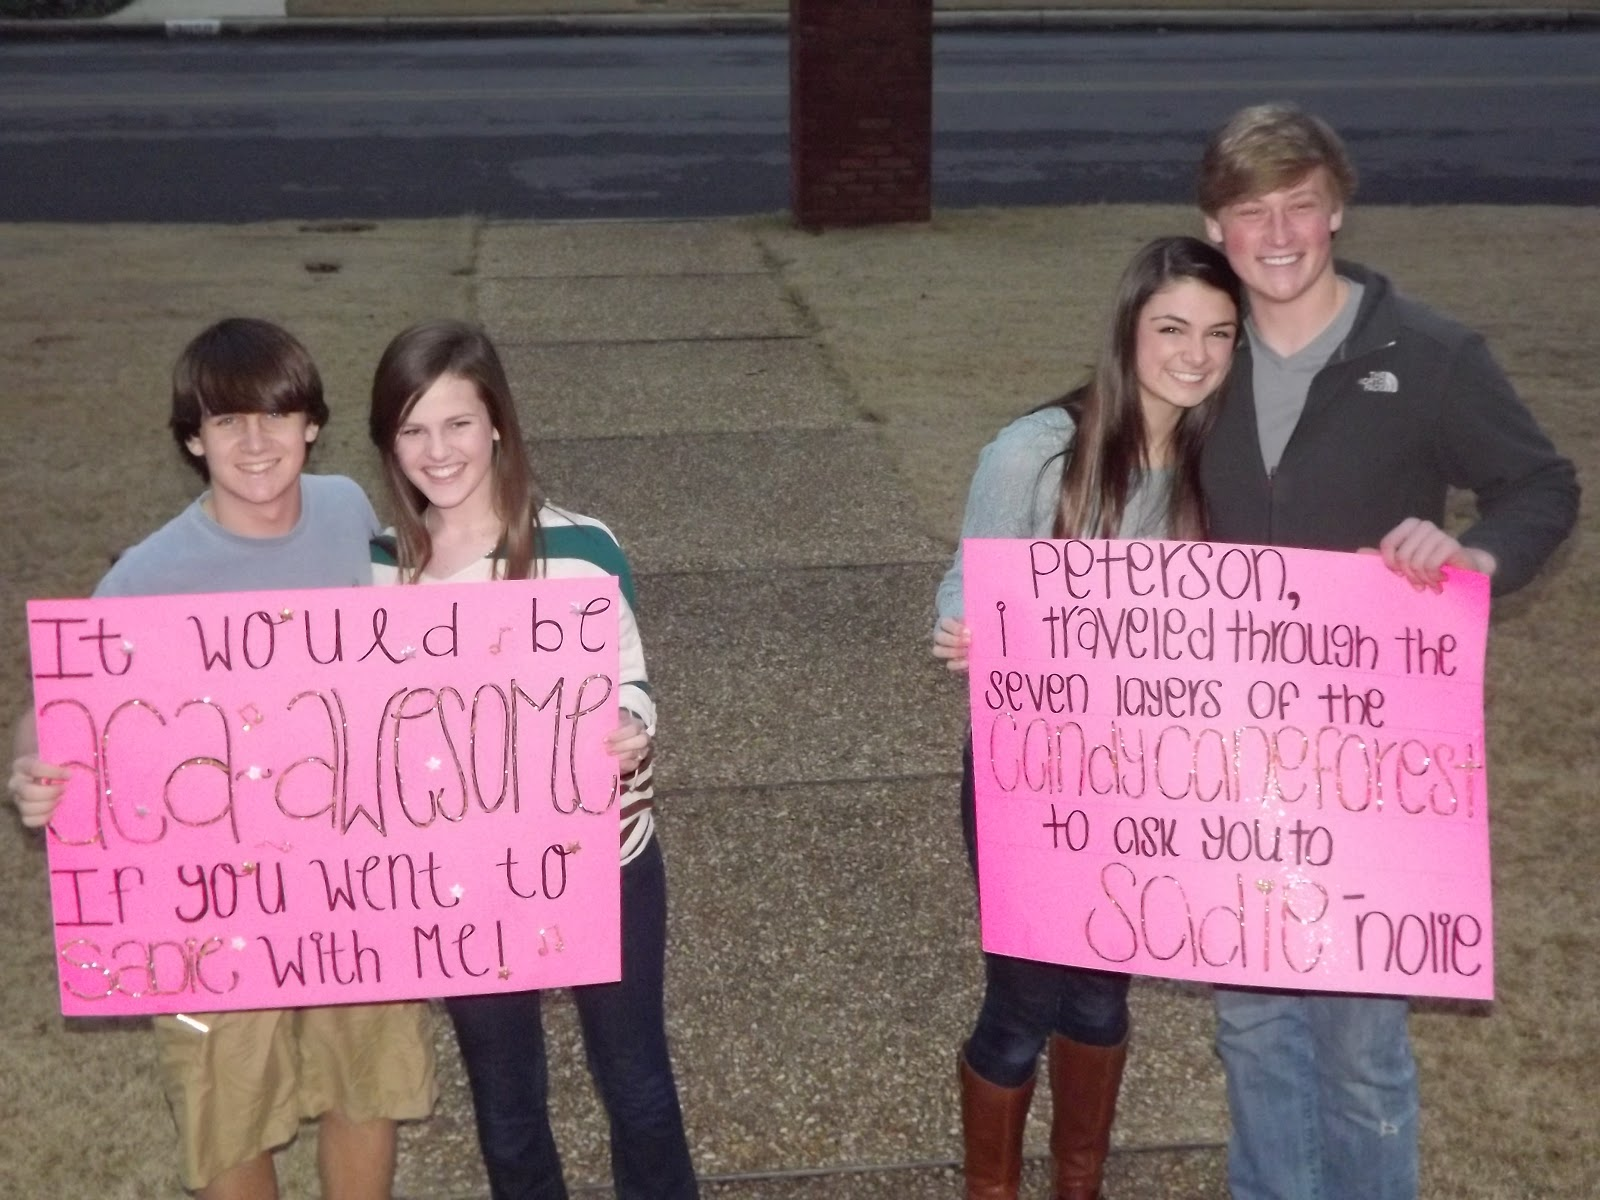 Cute ideas to ask a boy to sadie hawkins - Cute Ideas To Ask A Boy To Sadie Hawkins 59